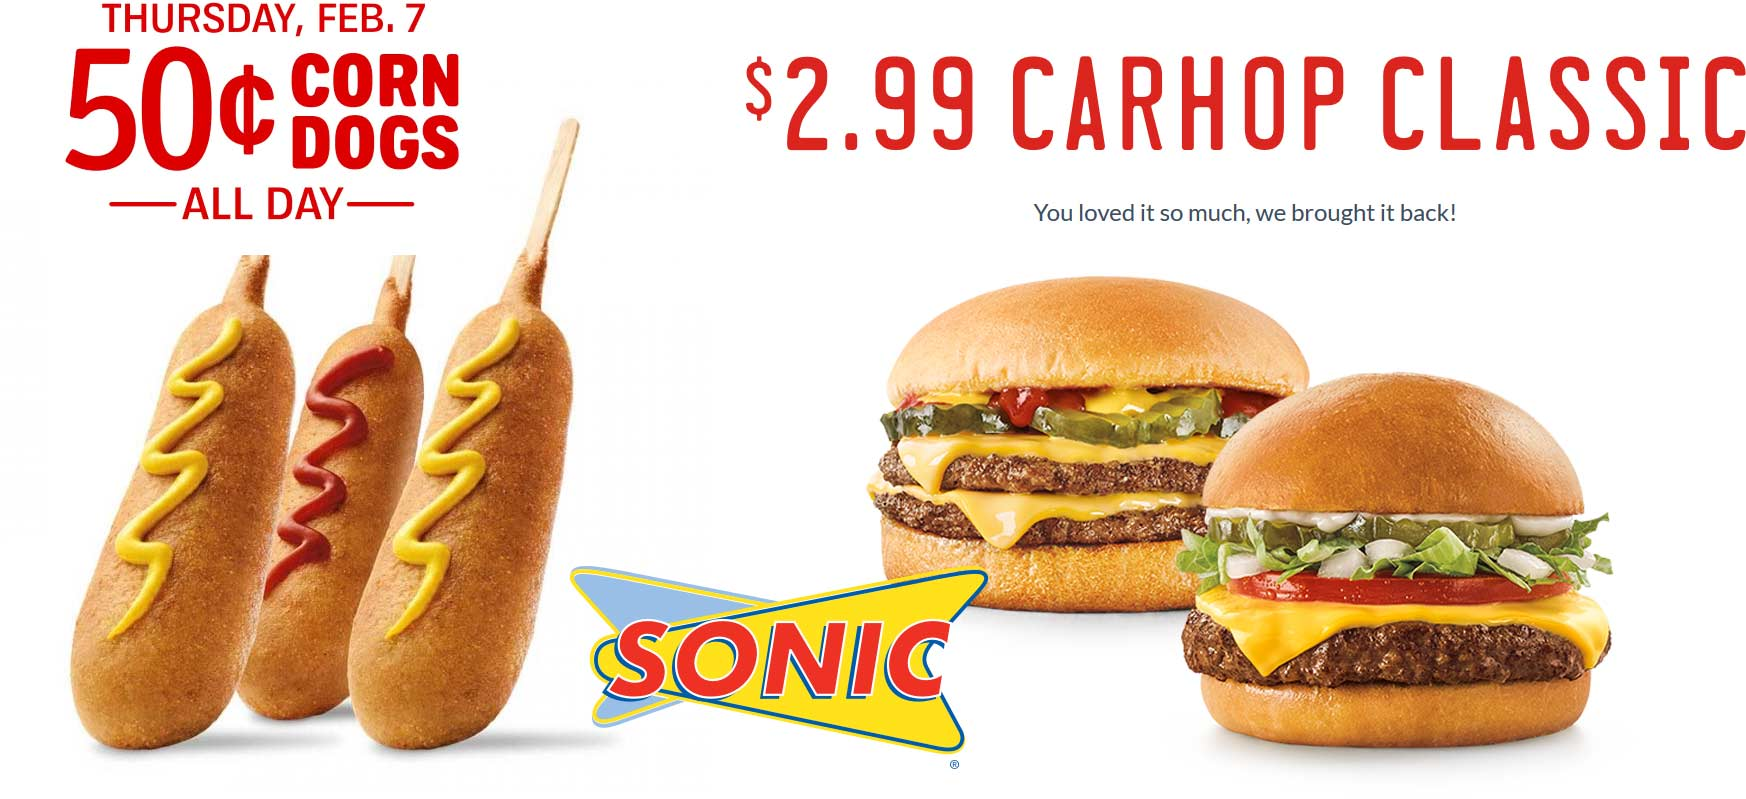 Sonic Drive-In Coupon June 2019 .50 cent corn dogs today at Sonic Drive-In restaurants